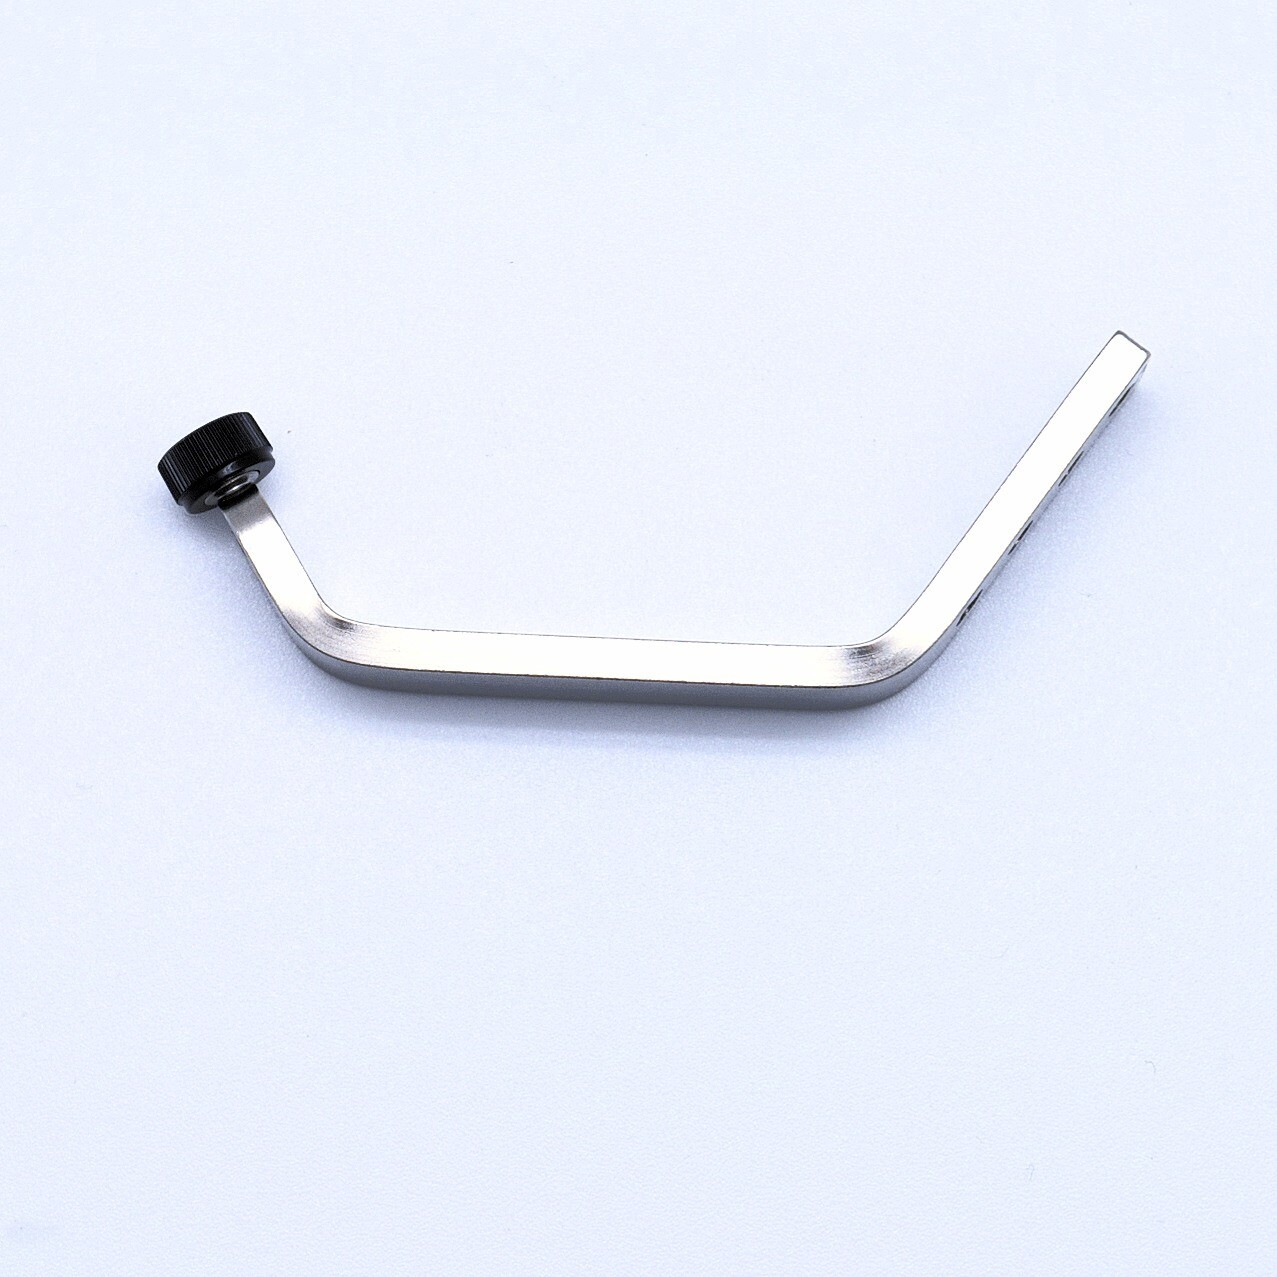 20339 Coaxial Probe Holder